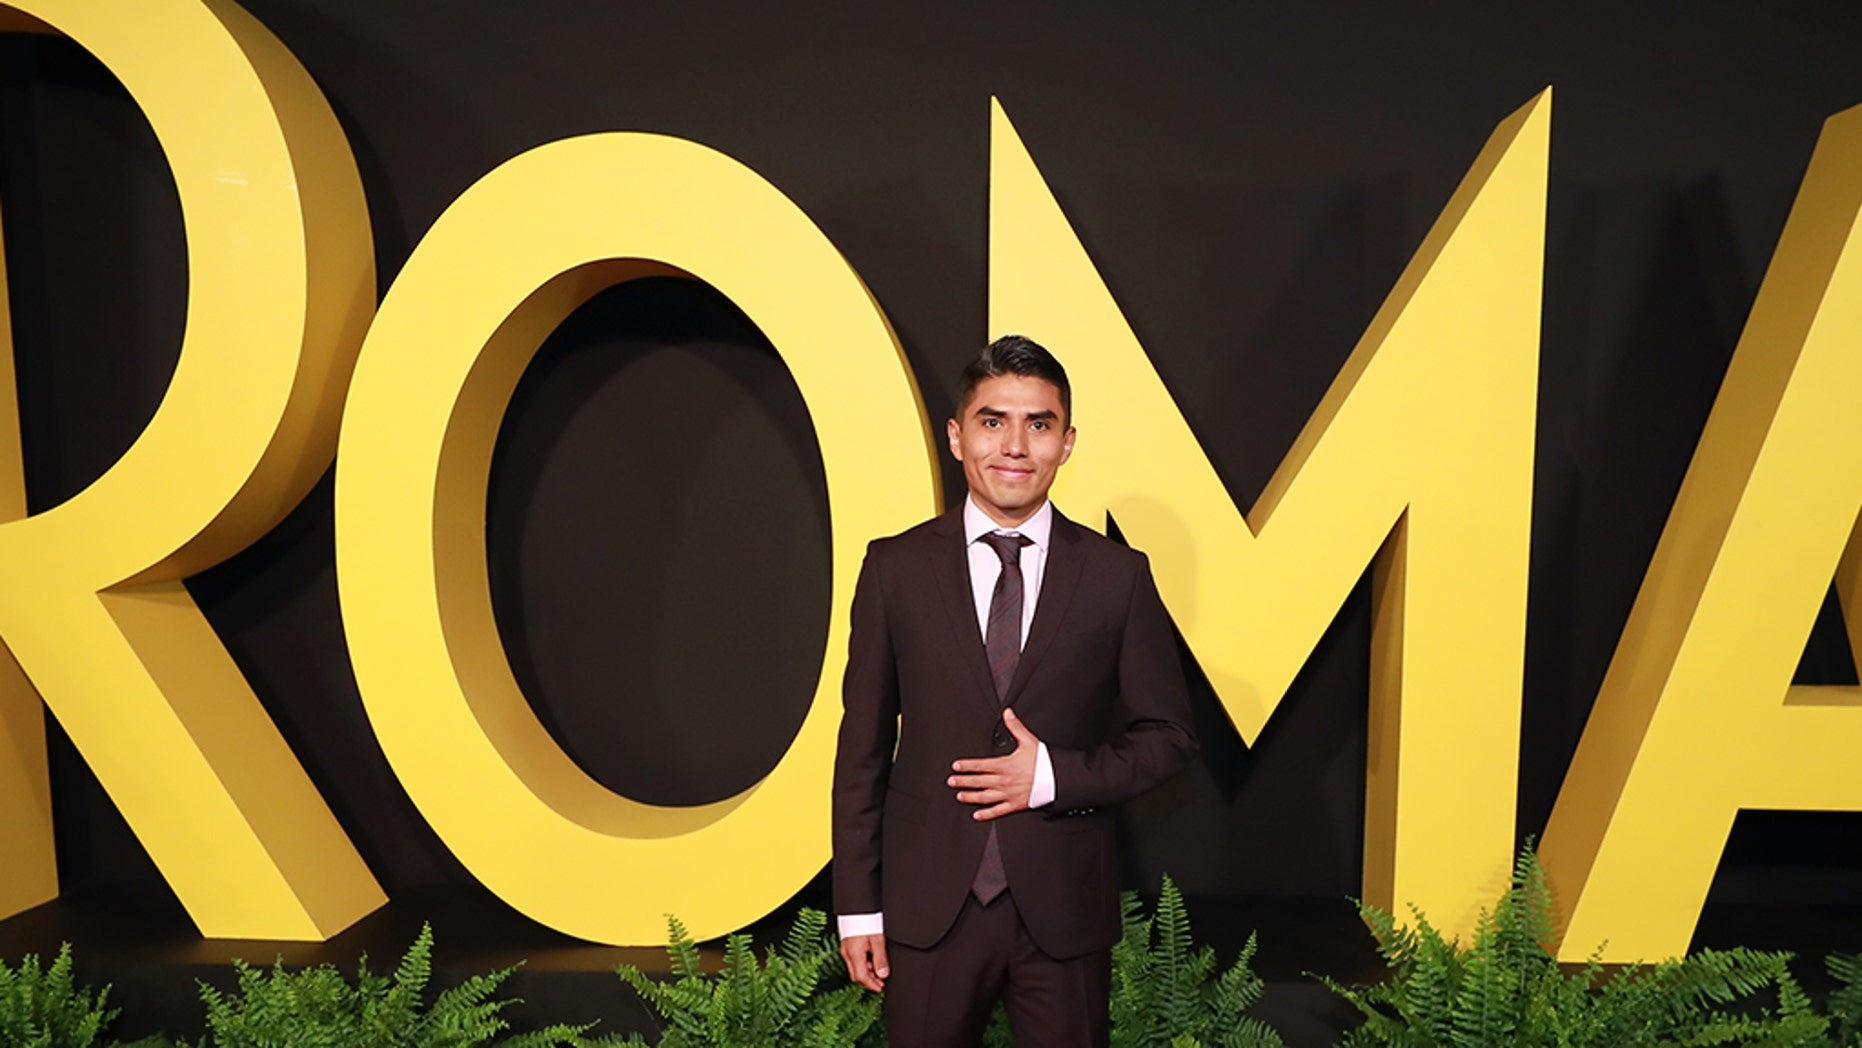 'Roma' actorJorge Antonio Guerrero Martínez, who is from Mexico,may have to miss the Academy Awards, because his visa requests keep getting denied